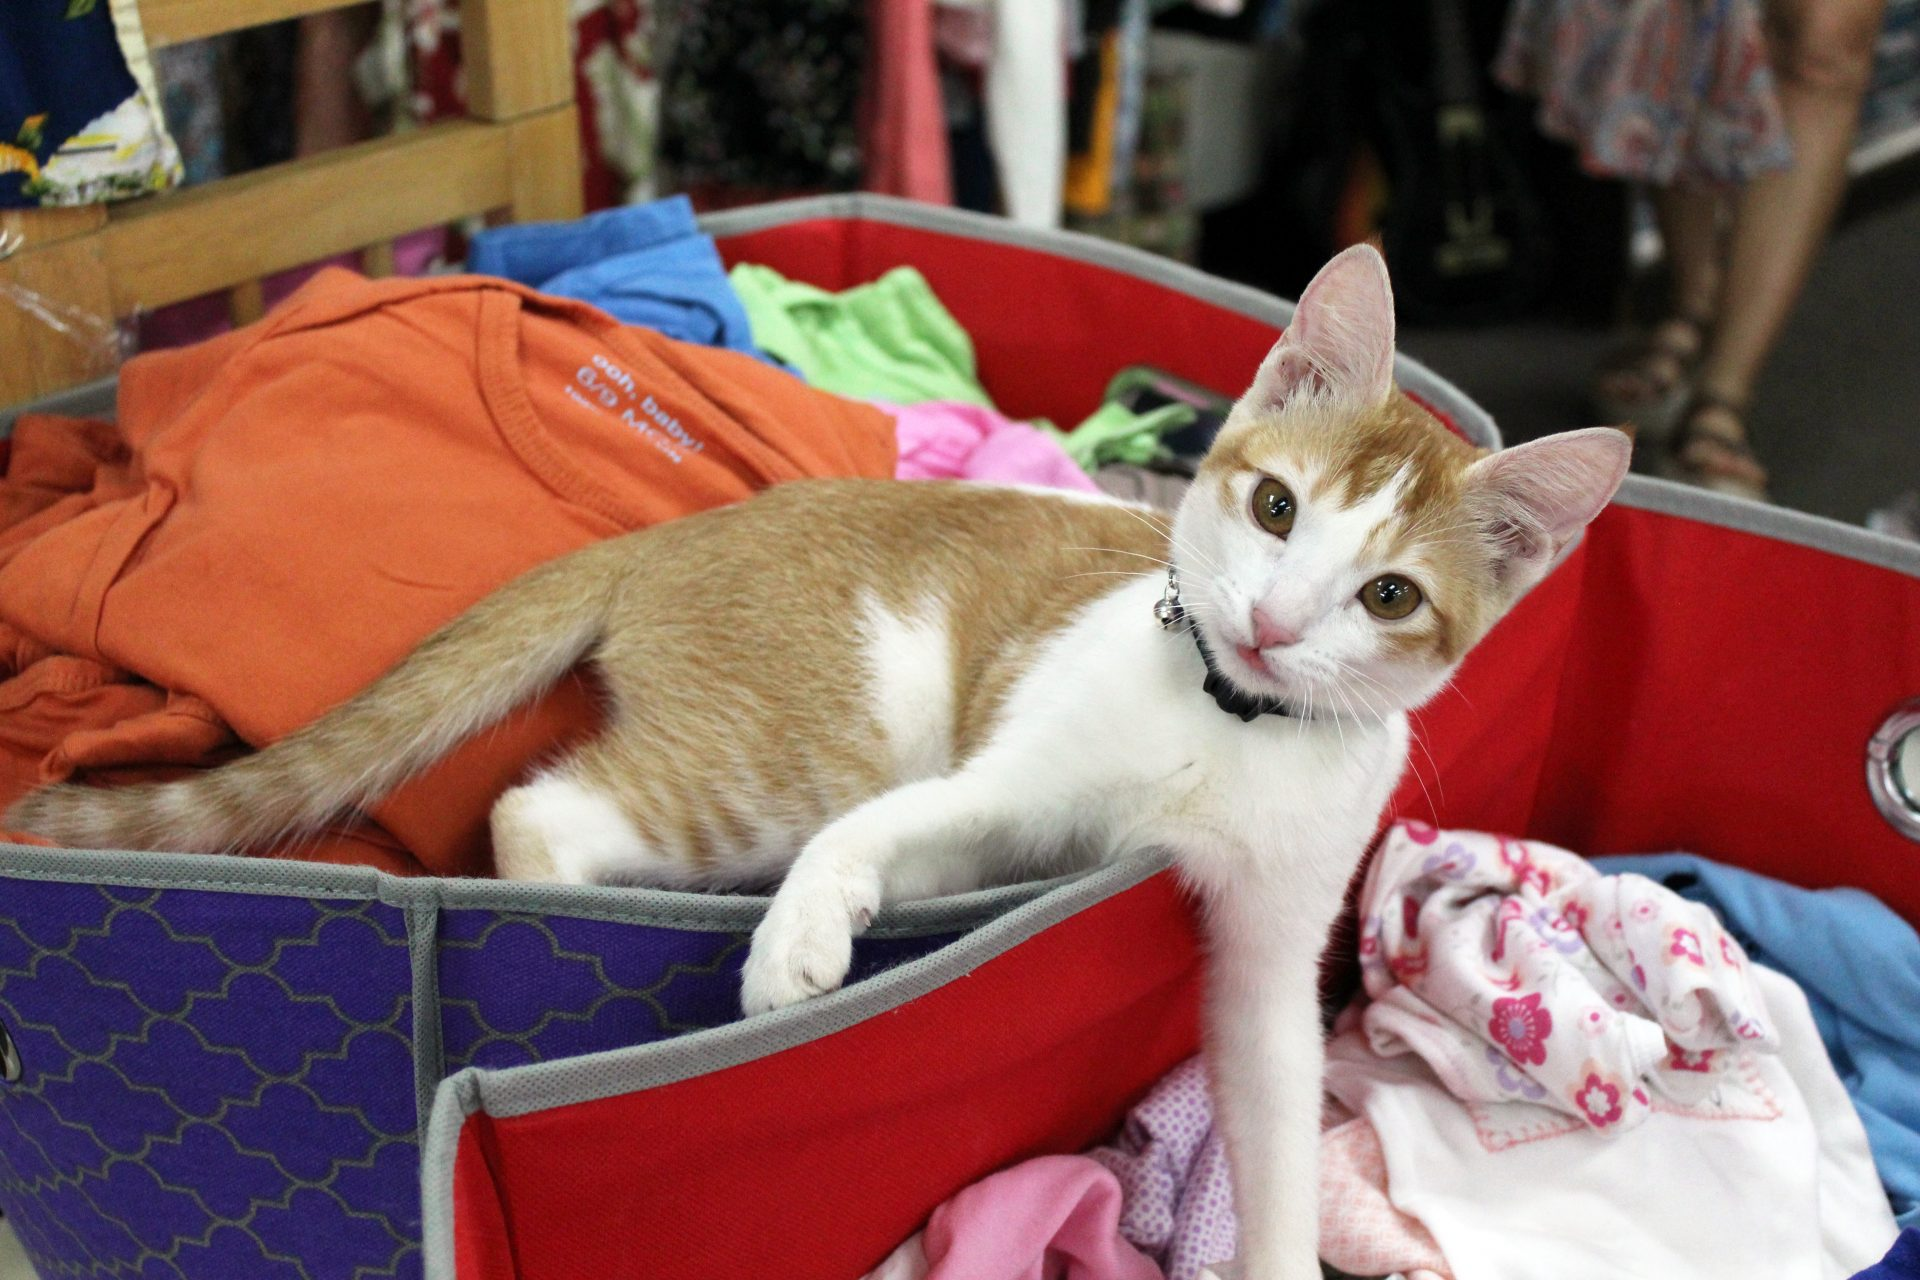 A cat at Bloomingtails thrift shop in Kauai.